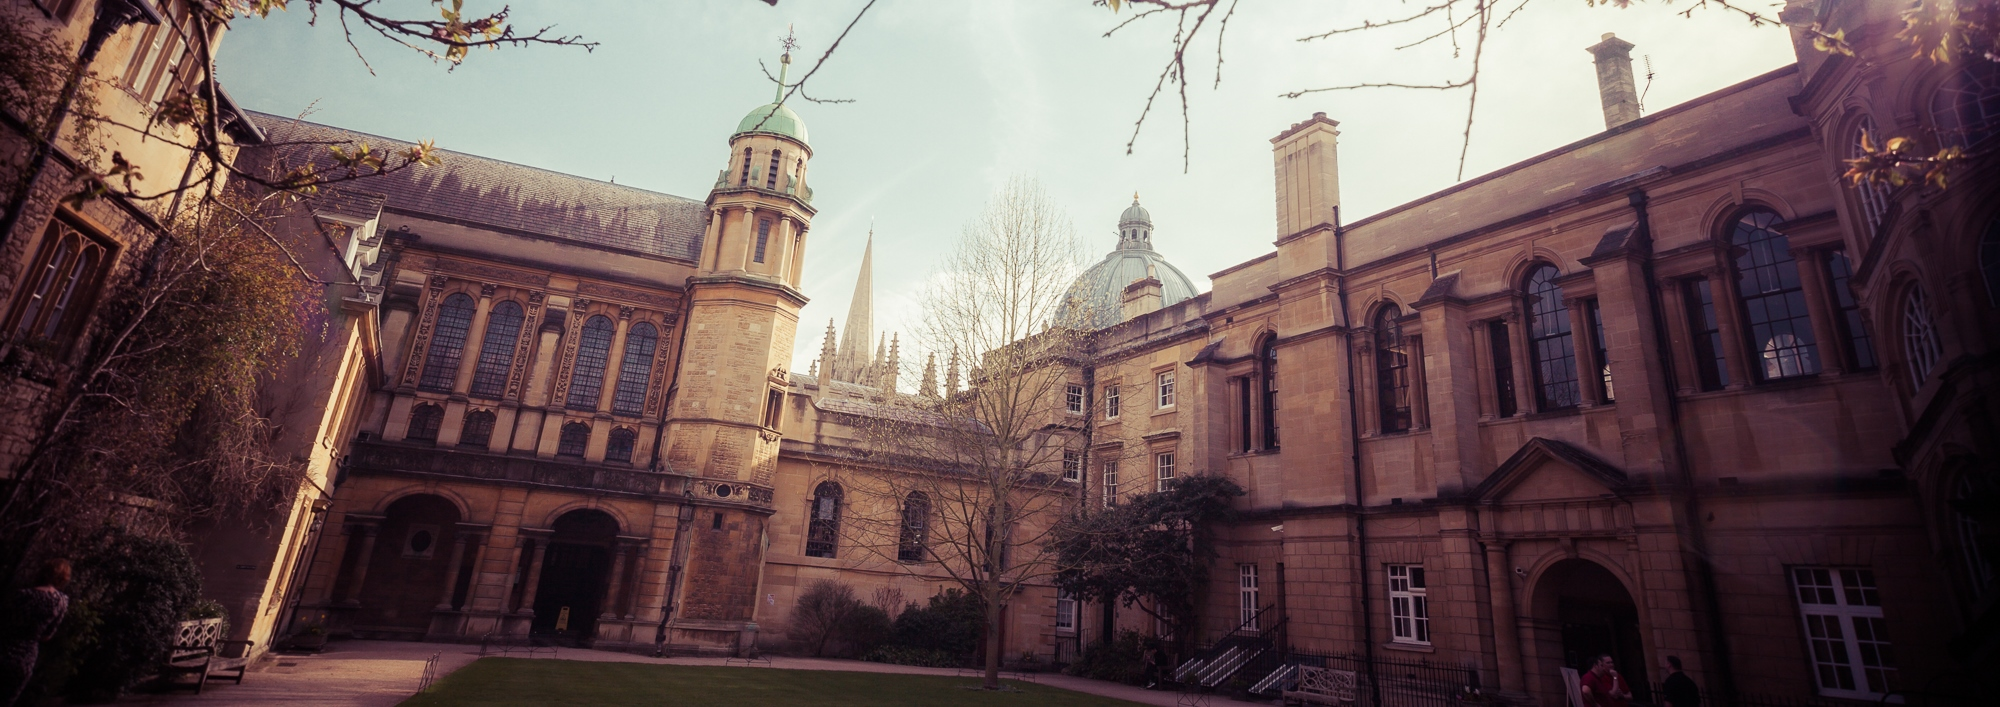 Hertford College Old Buildings Quad with Library in centre